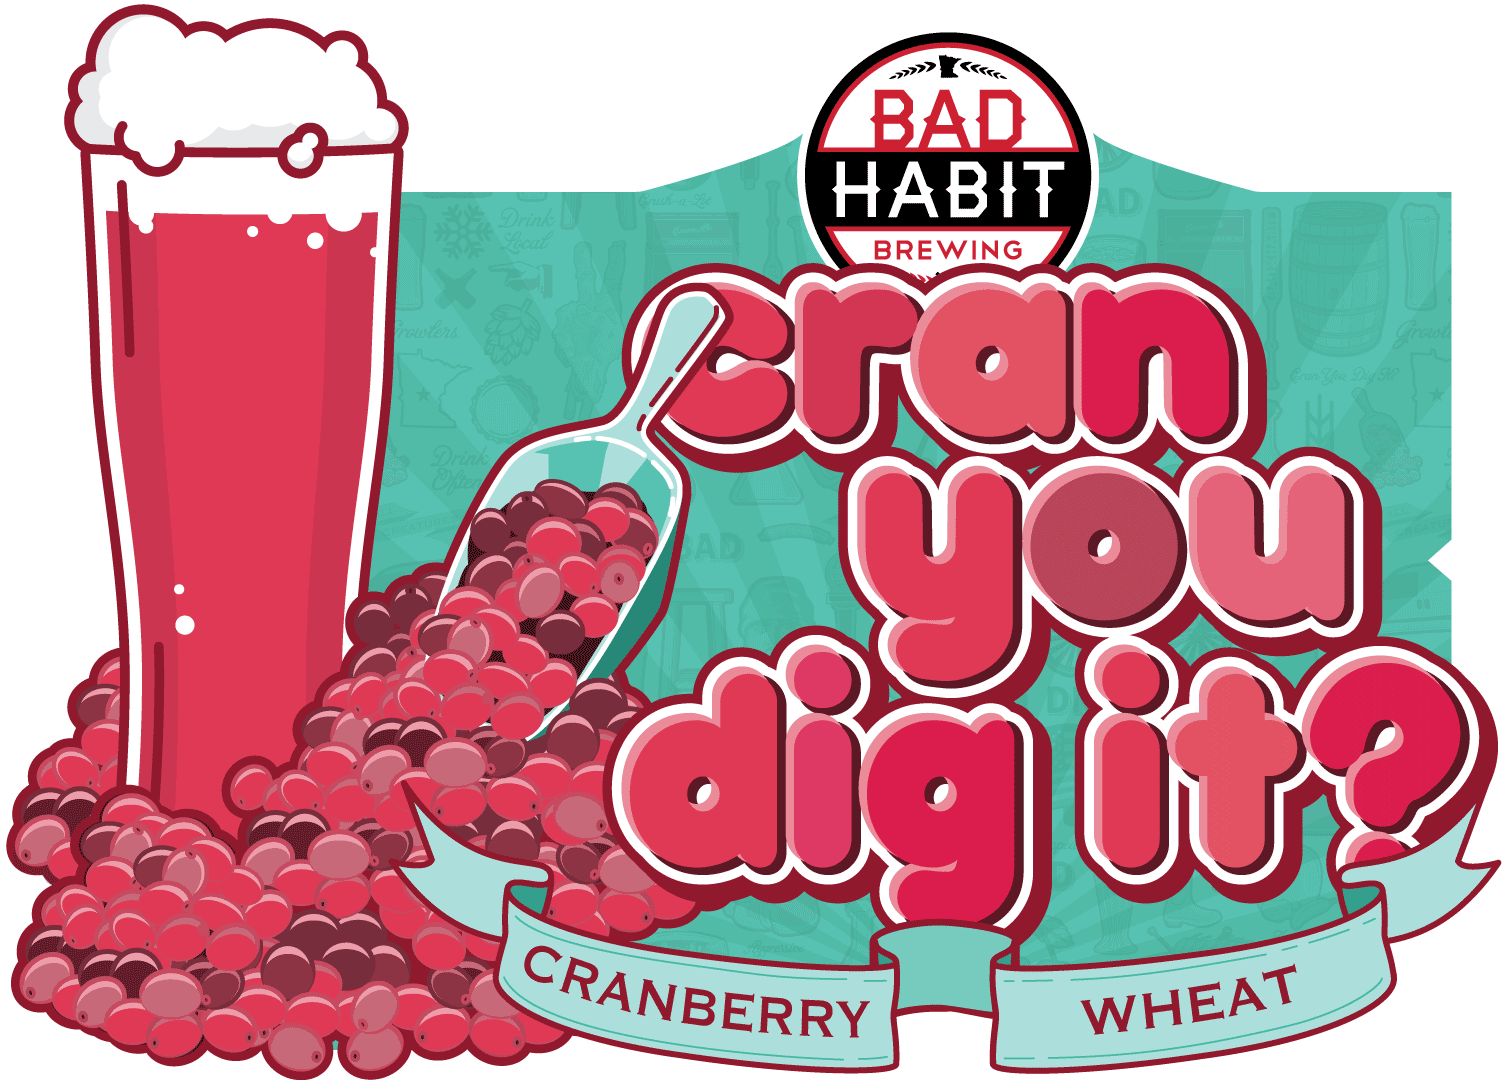 CRAN YOUDIG IT? - Cranberry Wheat | 6% ABVAll the bready, malty characteristics of a good wheat beer, infused with the delicious, tart fruitiness of cranberry. Light, fruity & refreshing! Cran you dig it?TAPPING SATURDAY, JULY 20